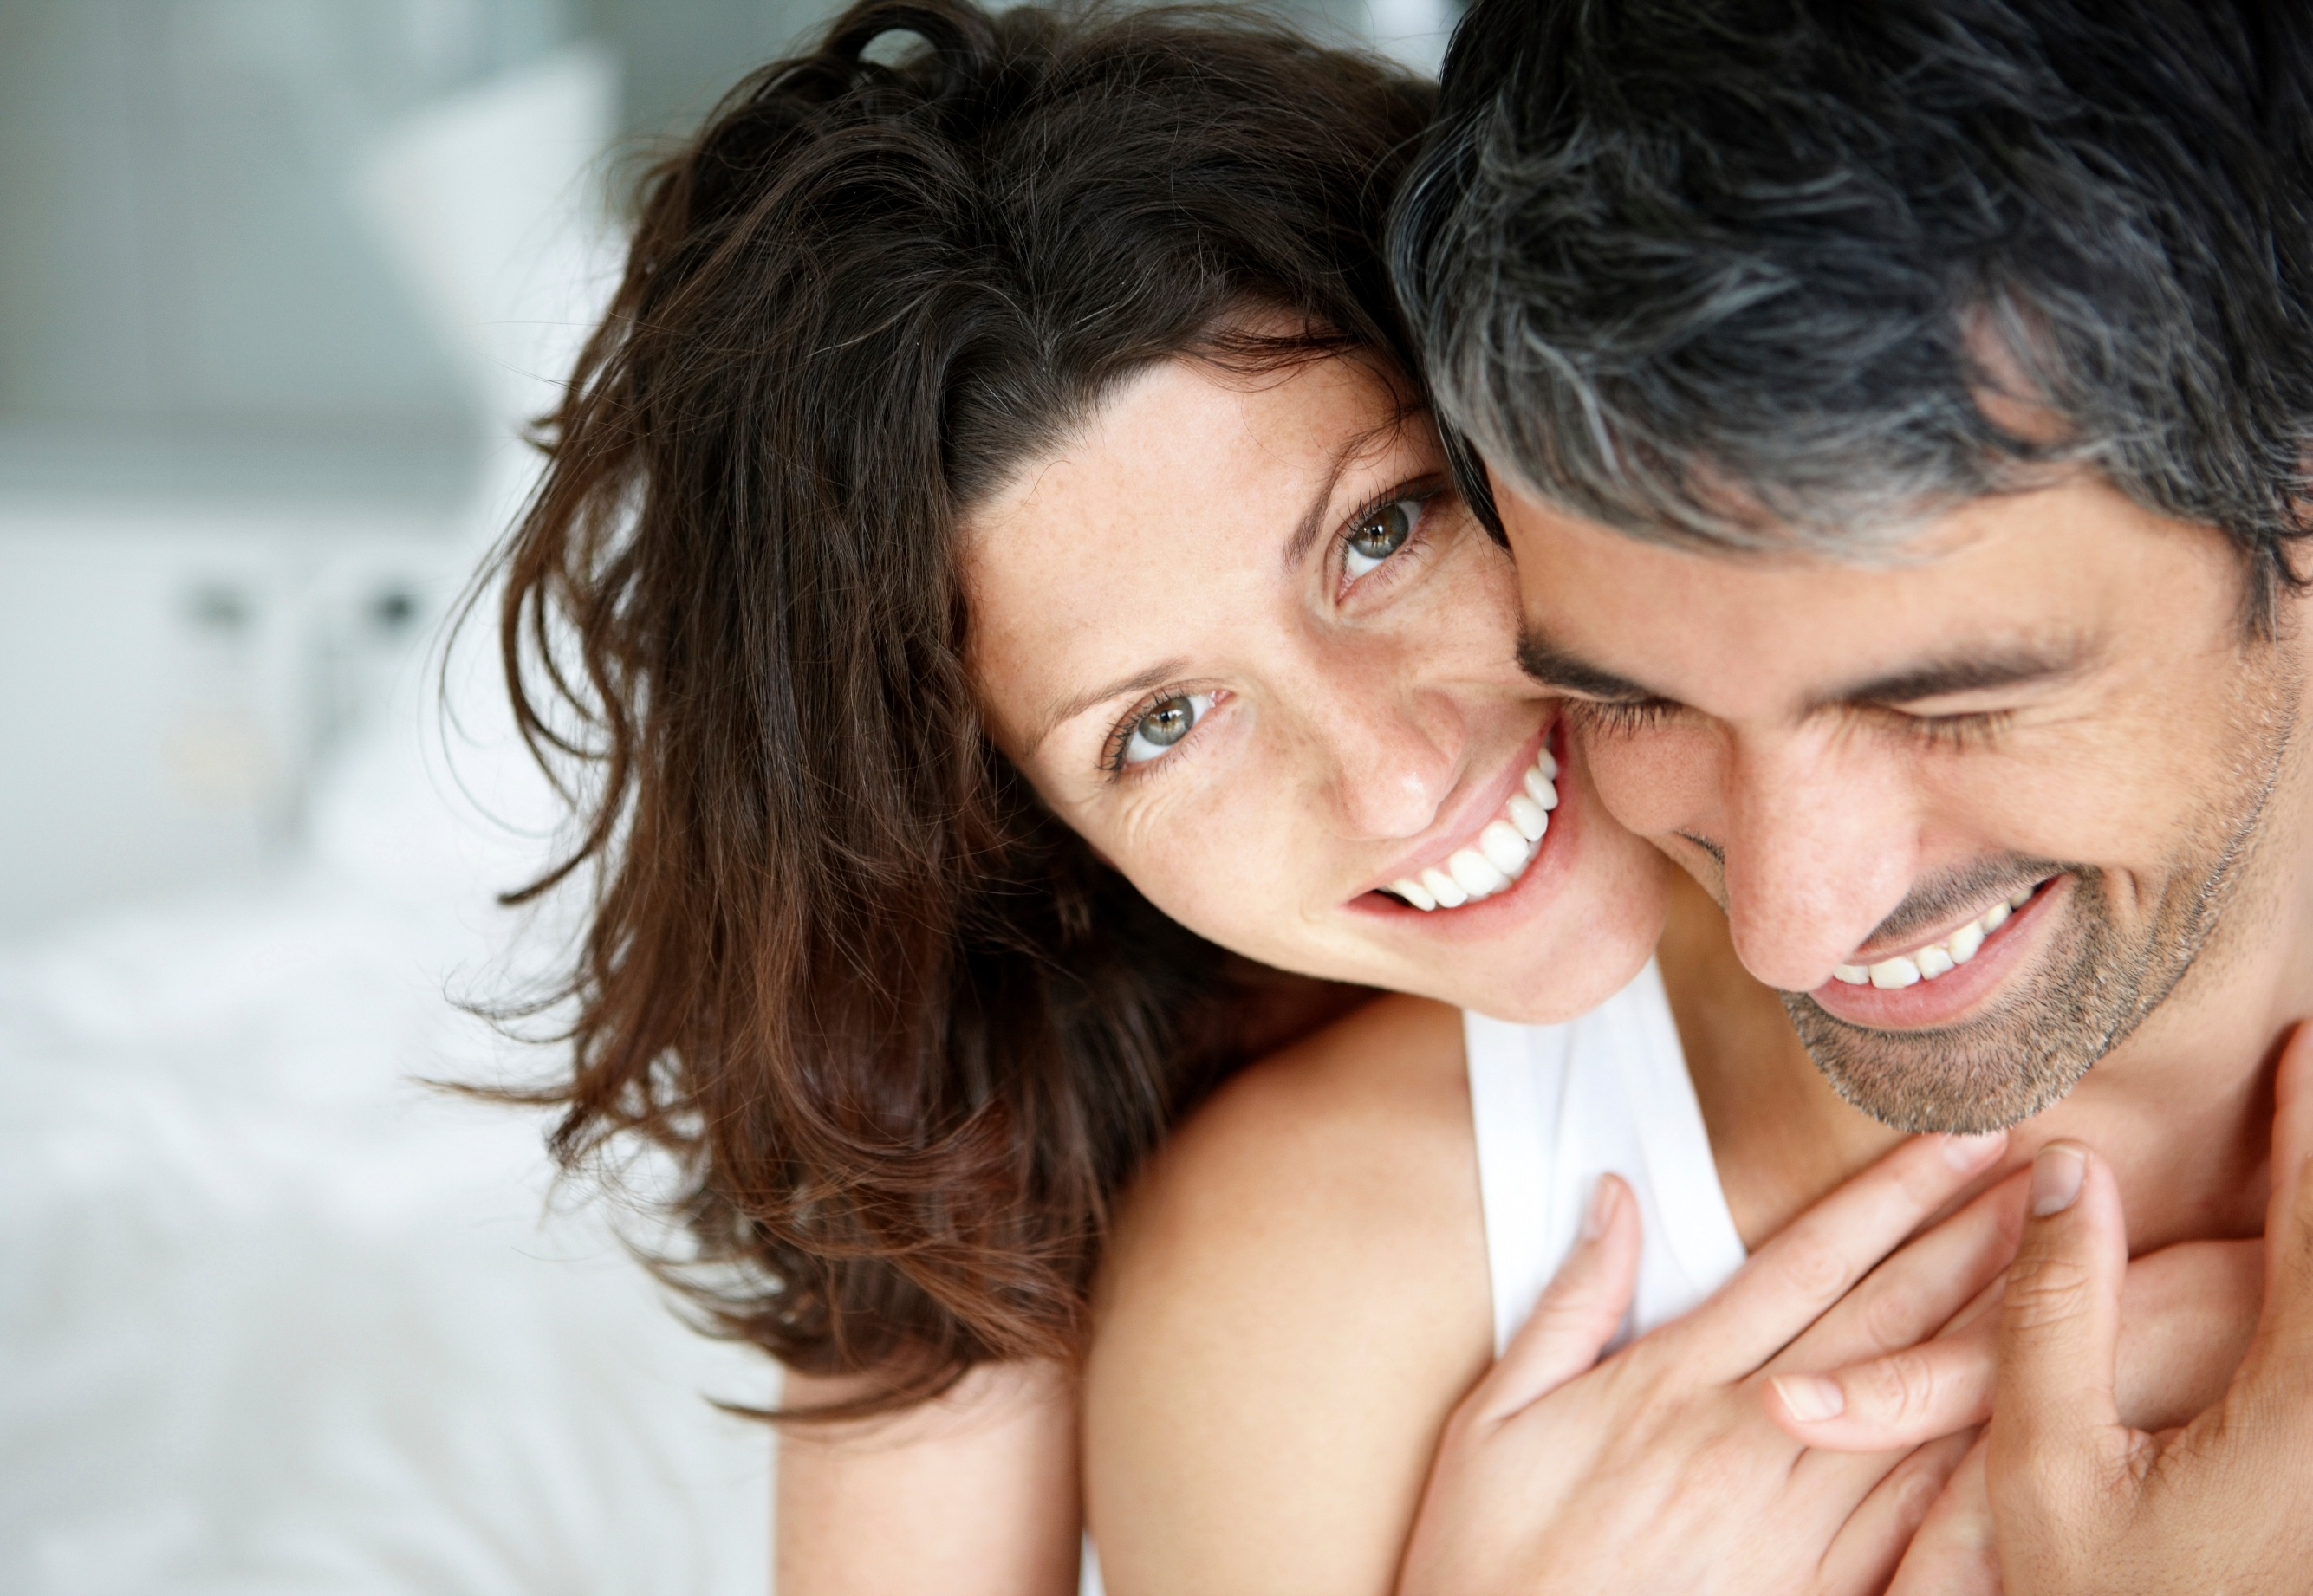 Young_Couple_close_up-1.jpg